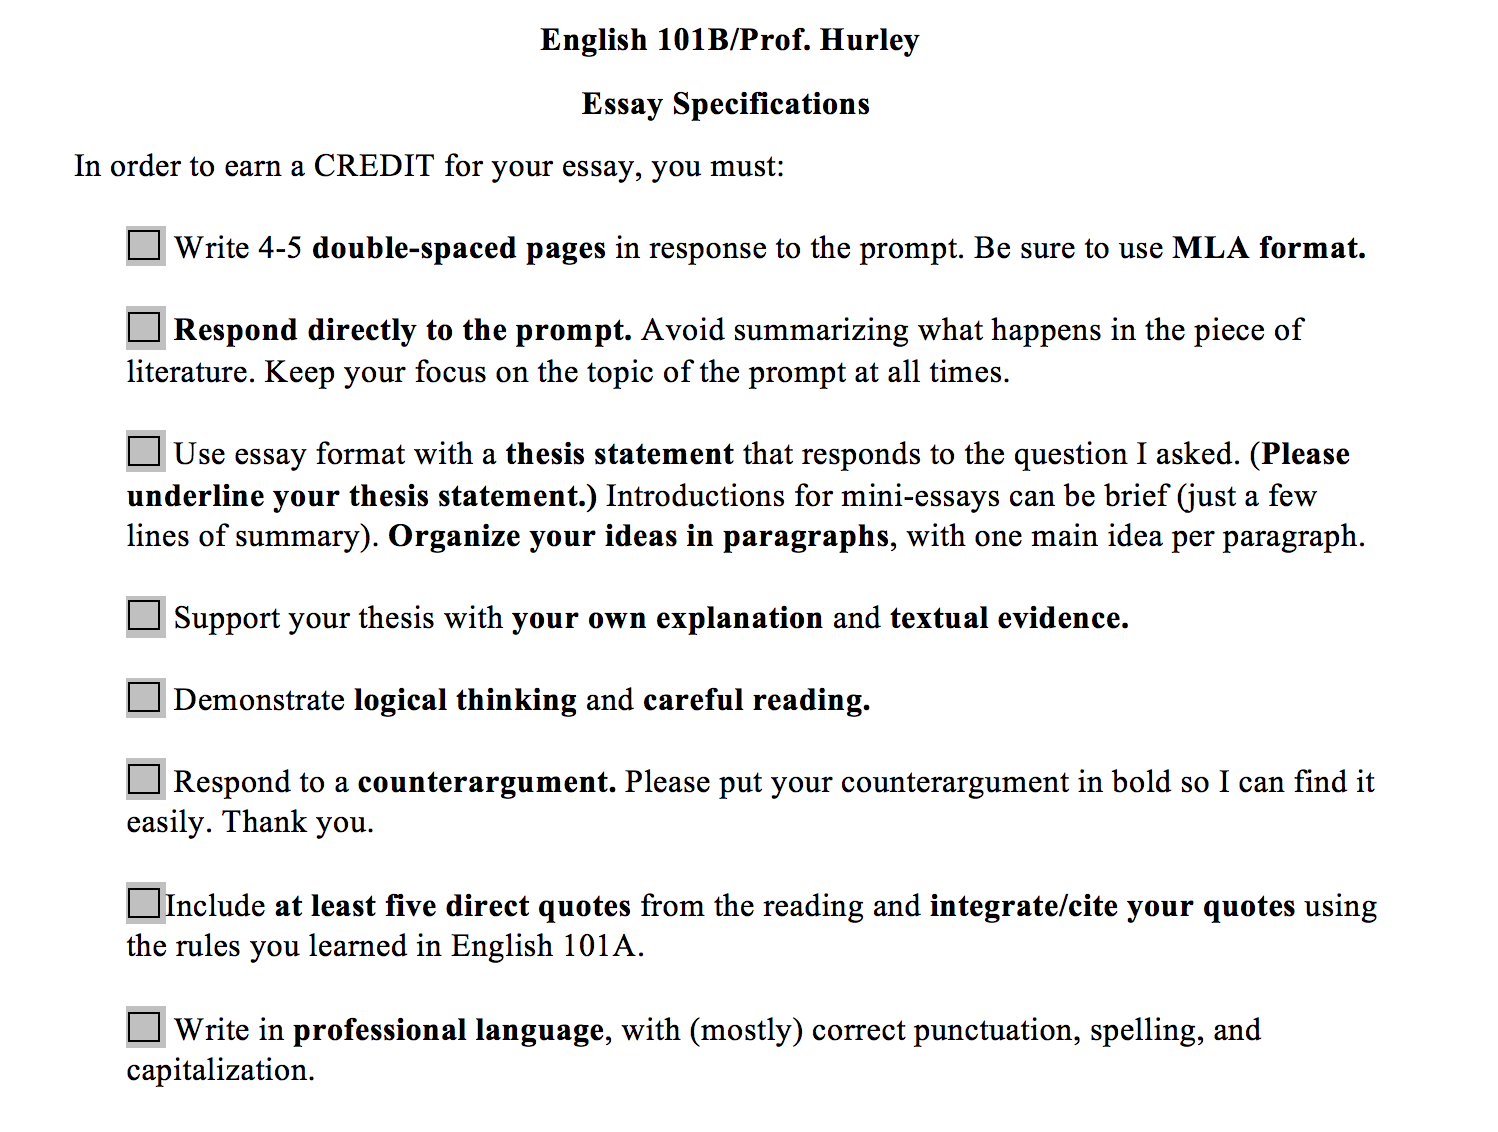 Essay On English Teacher  Thesis Statement Examples For Persuasive Essays also Best Essays In English Vagueness The Surprising Thing We Might Need More Of In  Model English Essays